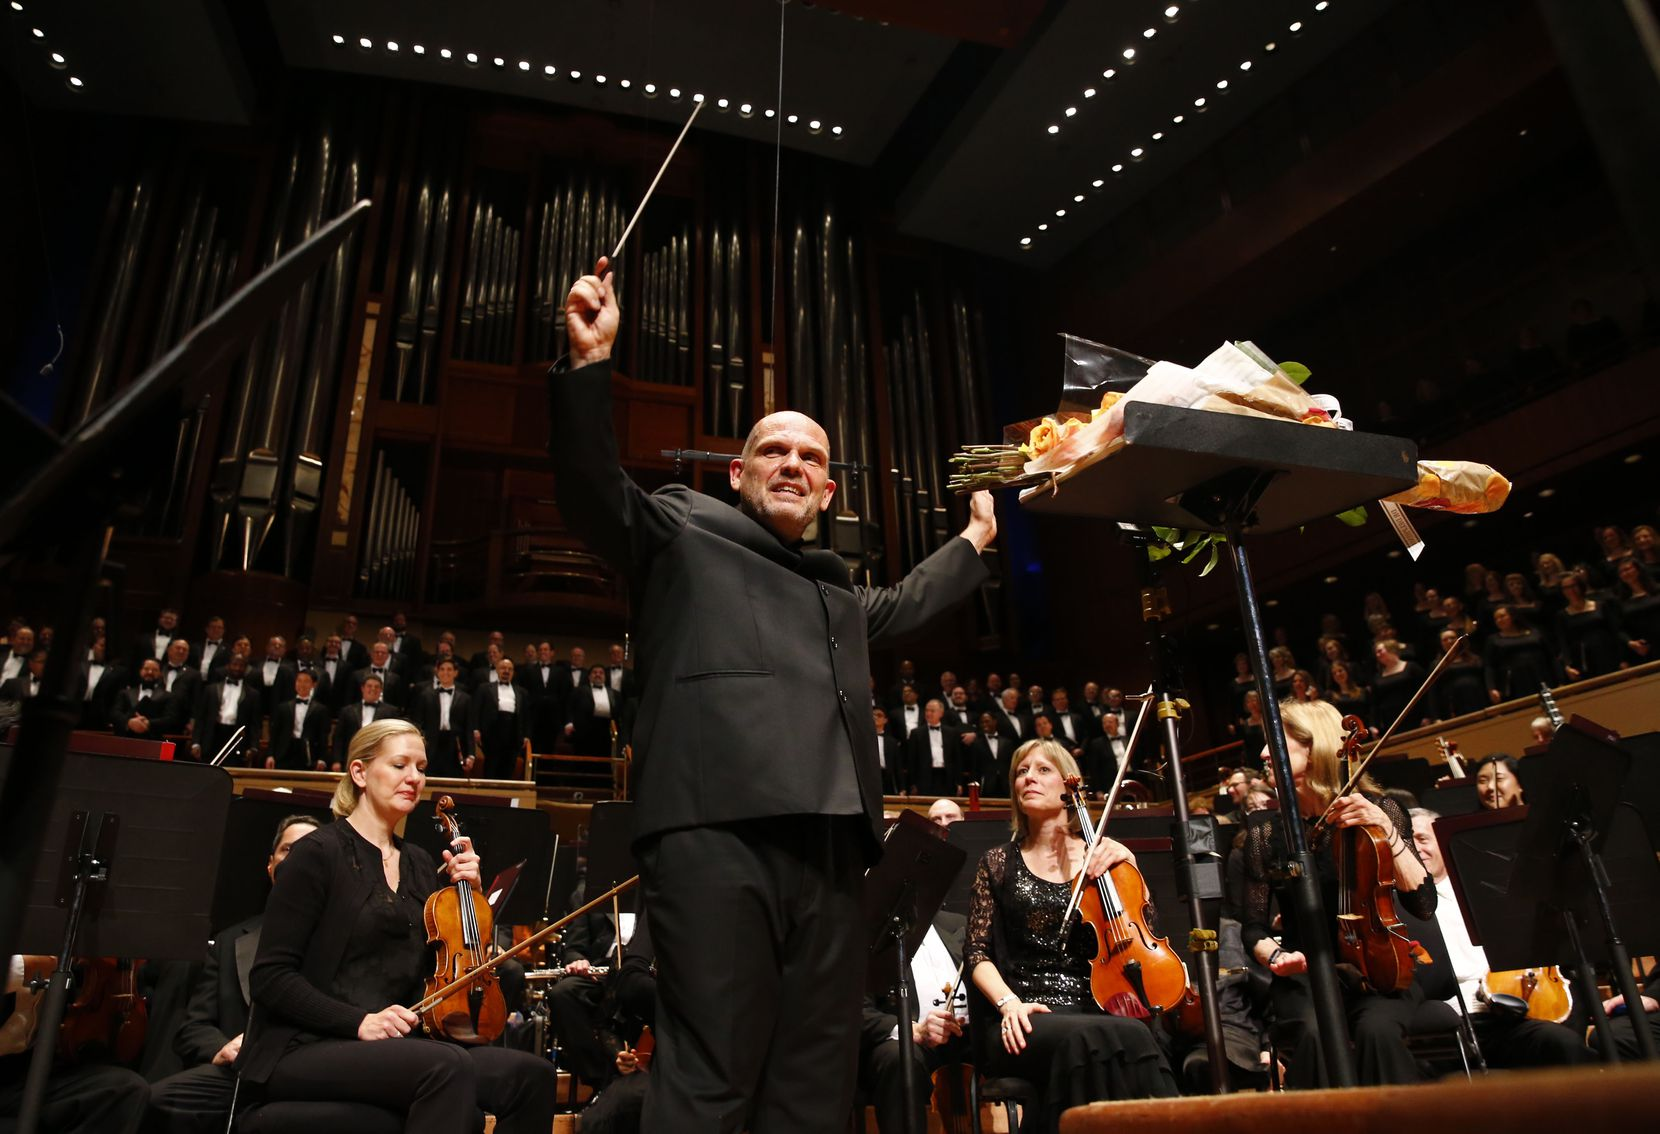 Jaap van Zweden waved his hands after his last performance as music director for the Dallas Symphony Orchestra at the Meyerson Symphony Center in Dallas on May 26, 2018.